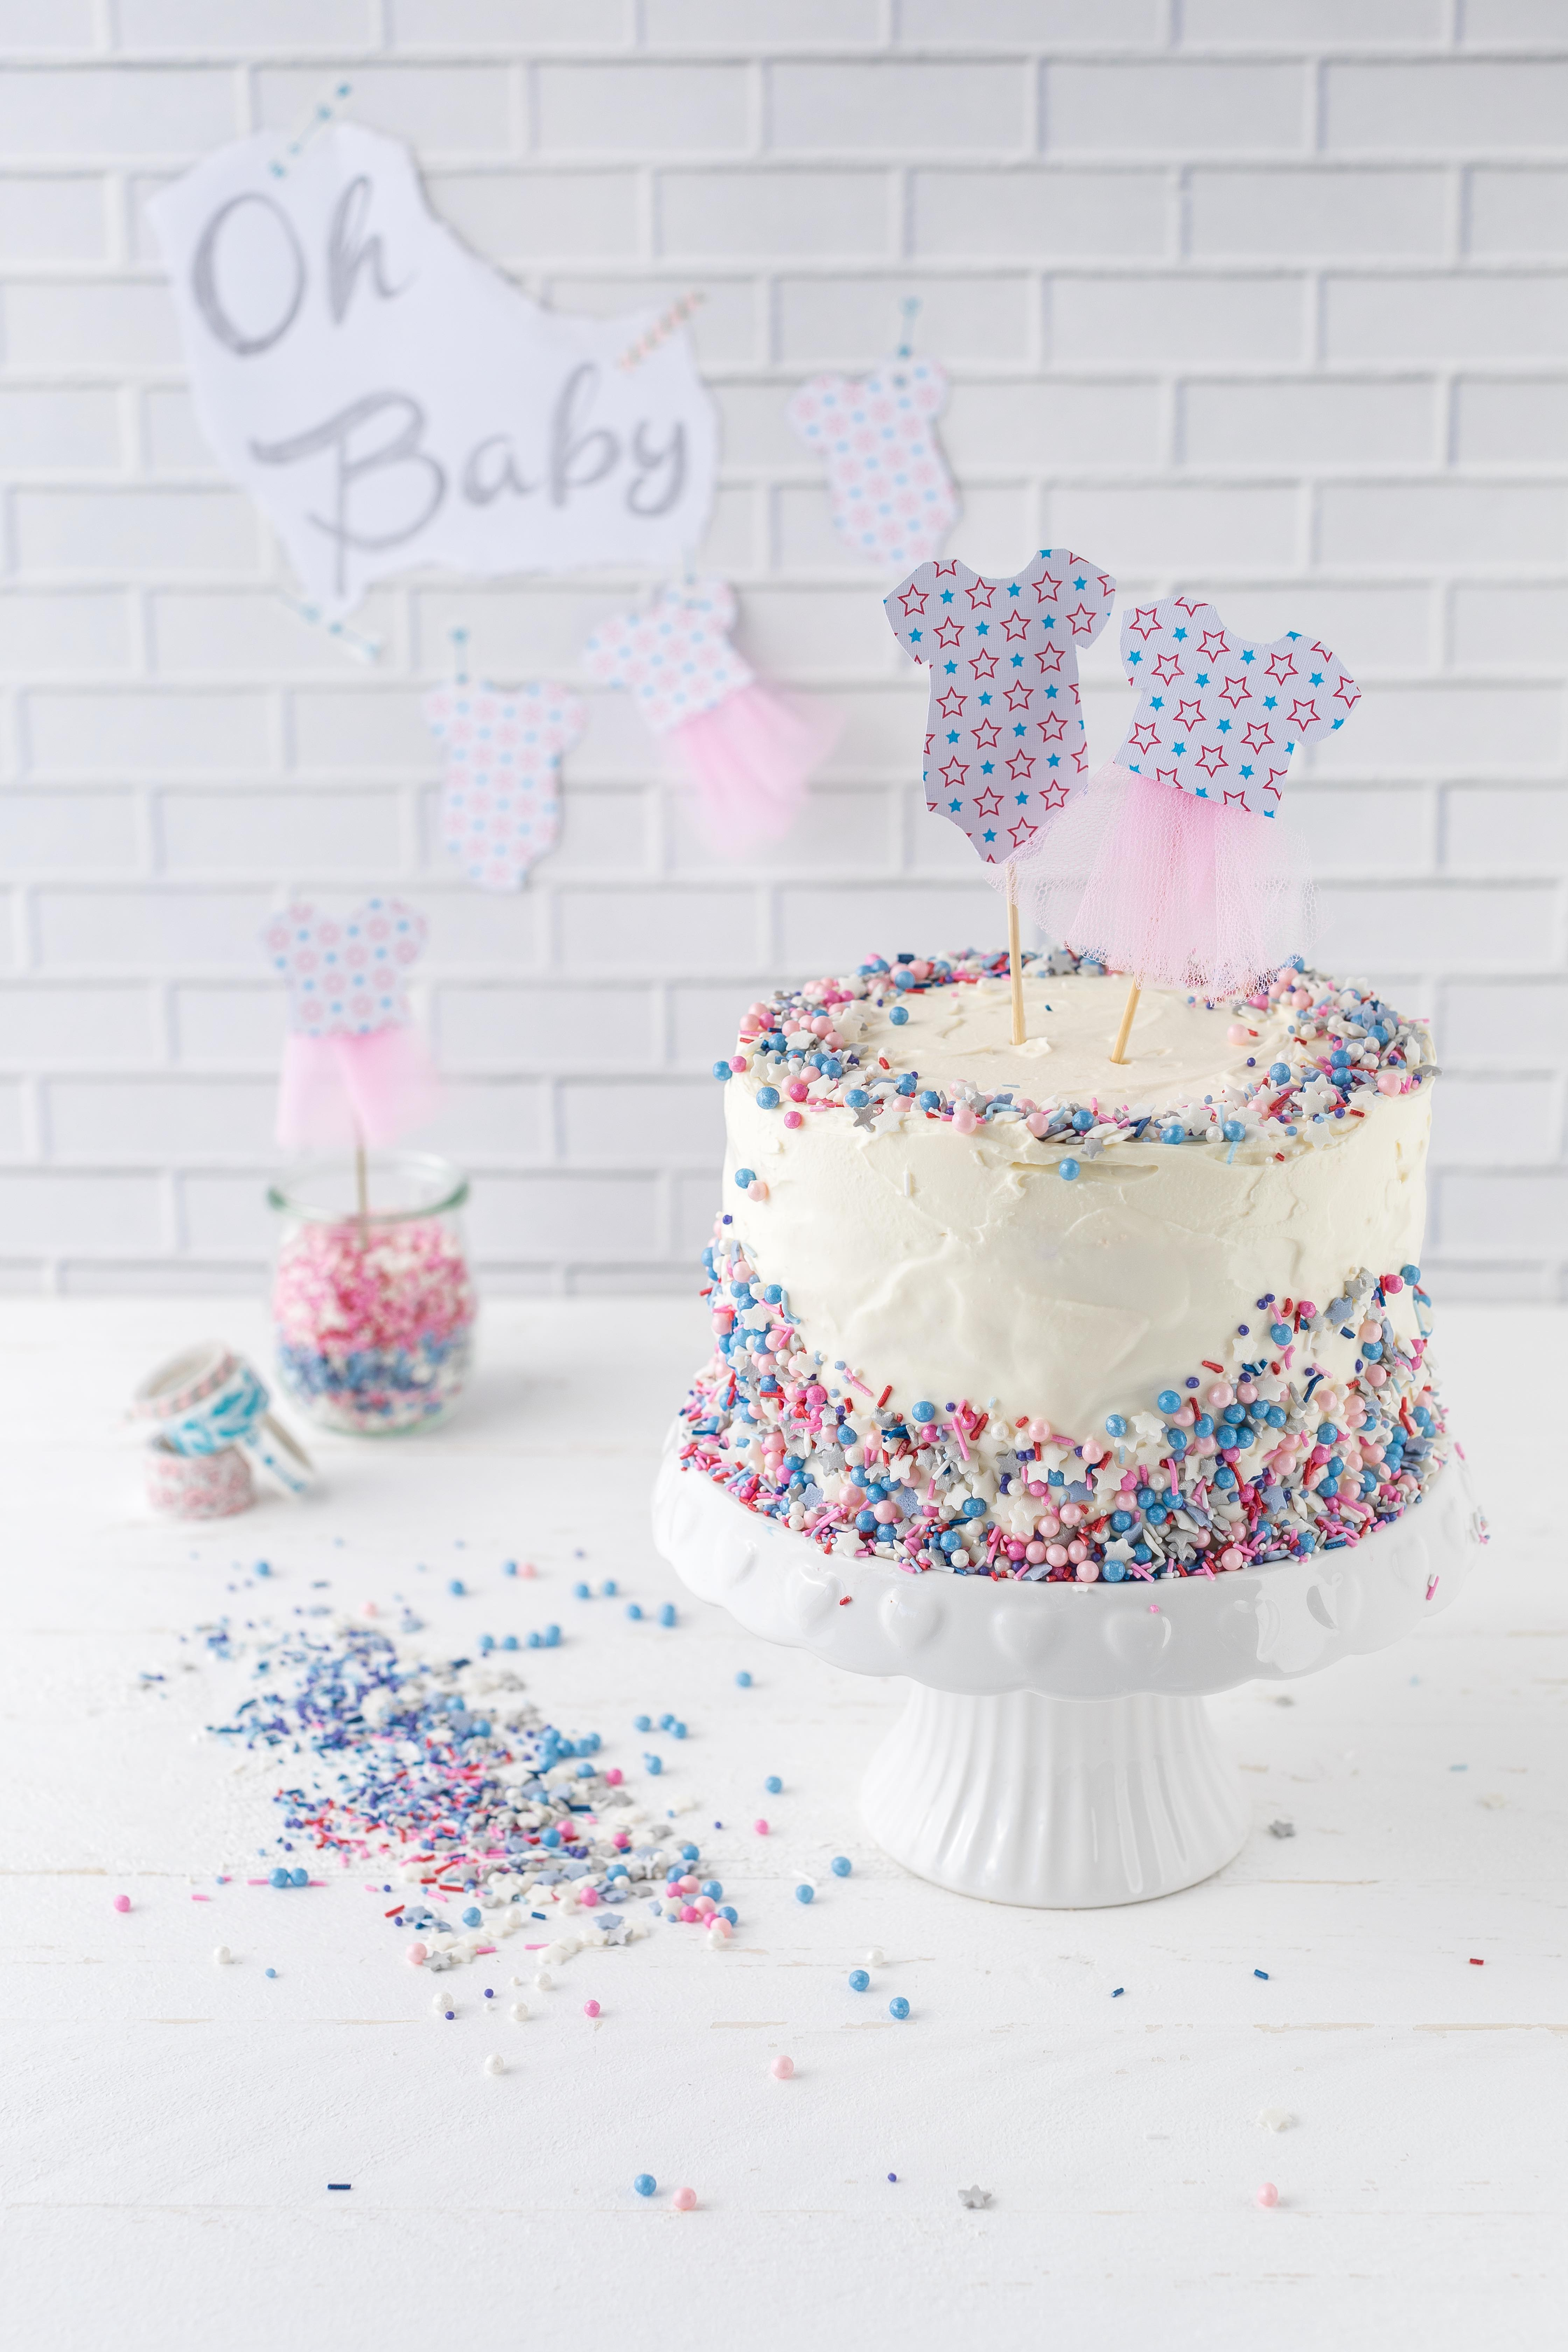 Werbung - Gender Reveal Cake Rezept Babyparty Babyshower Torte #babyshower #babyparty #genderreveal #torte #cake #backen | Emma´s Lieblingsstücke